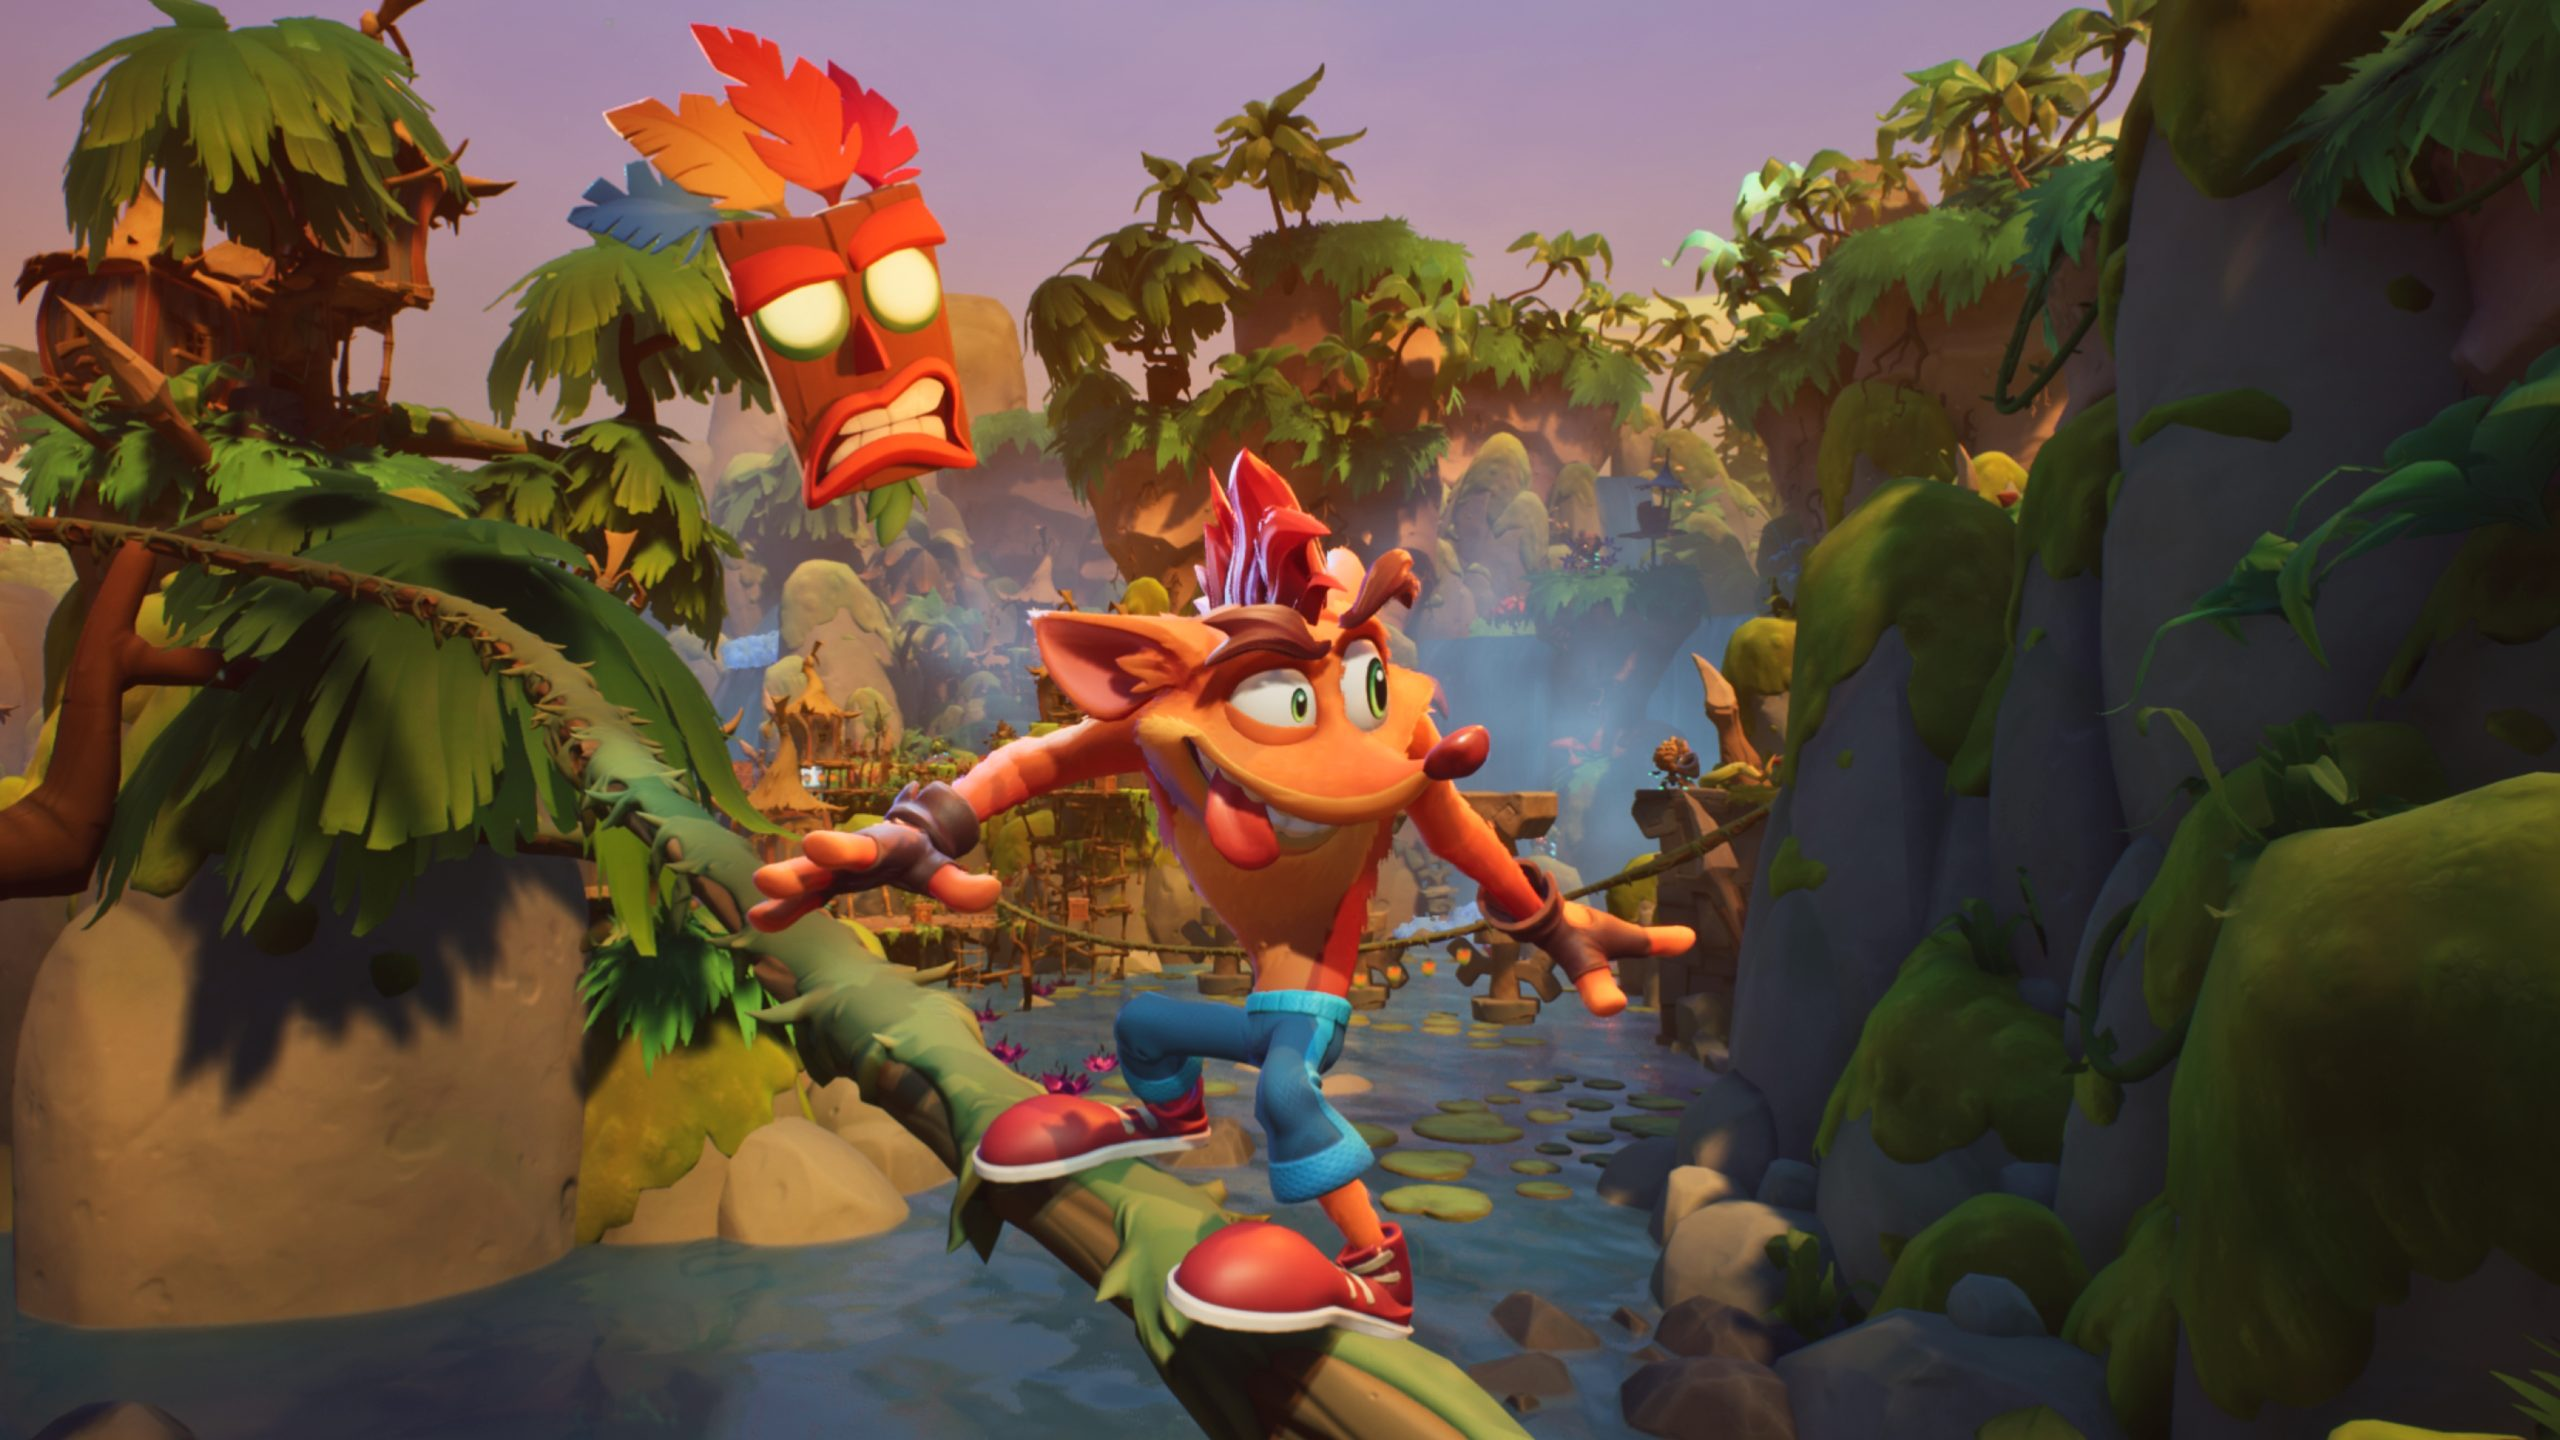 Crash Bandicoot 4 Its About Time 2020 06 22 20 001 scaled